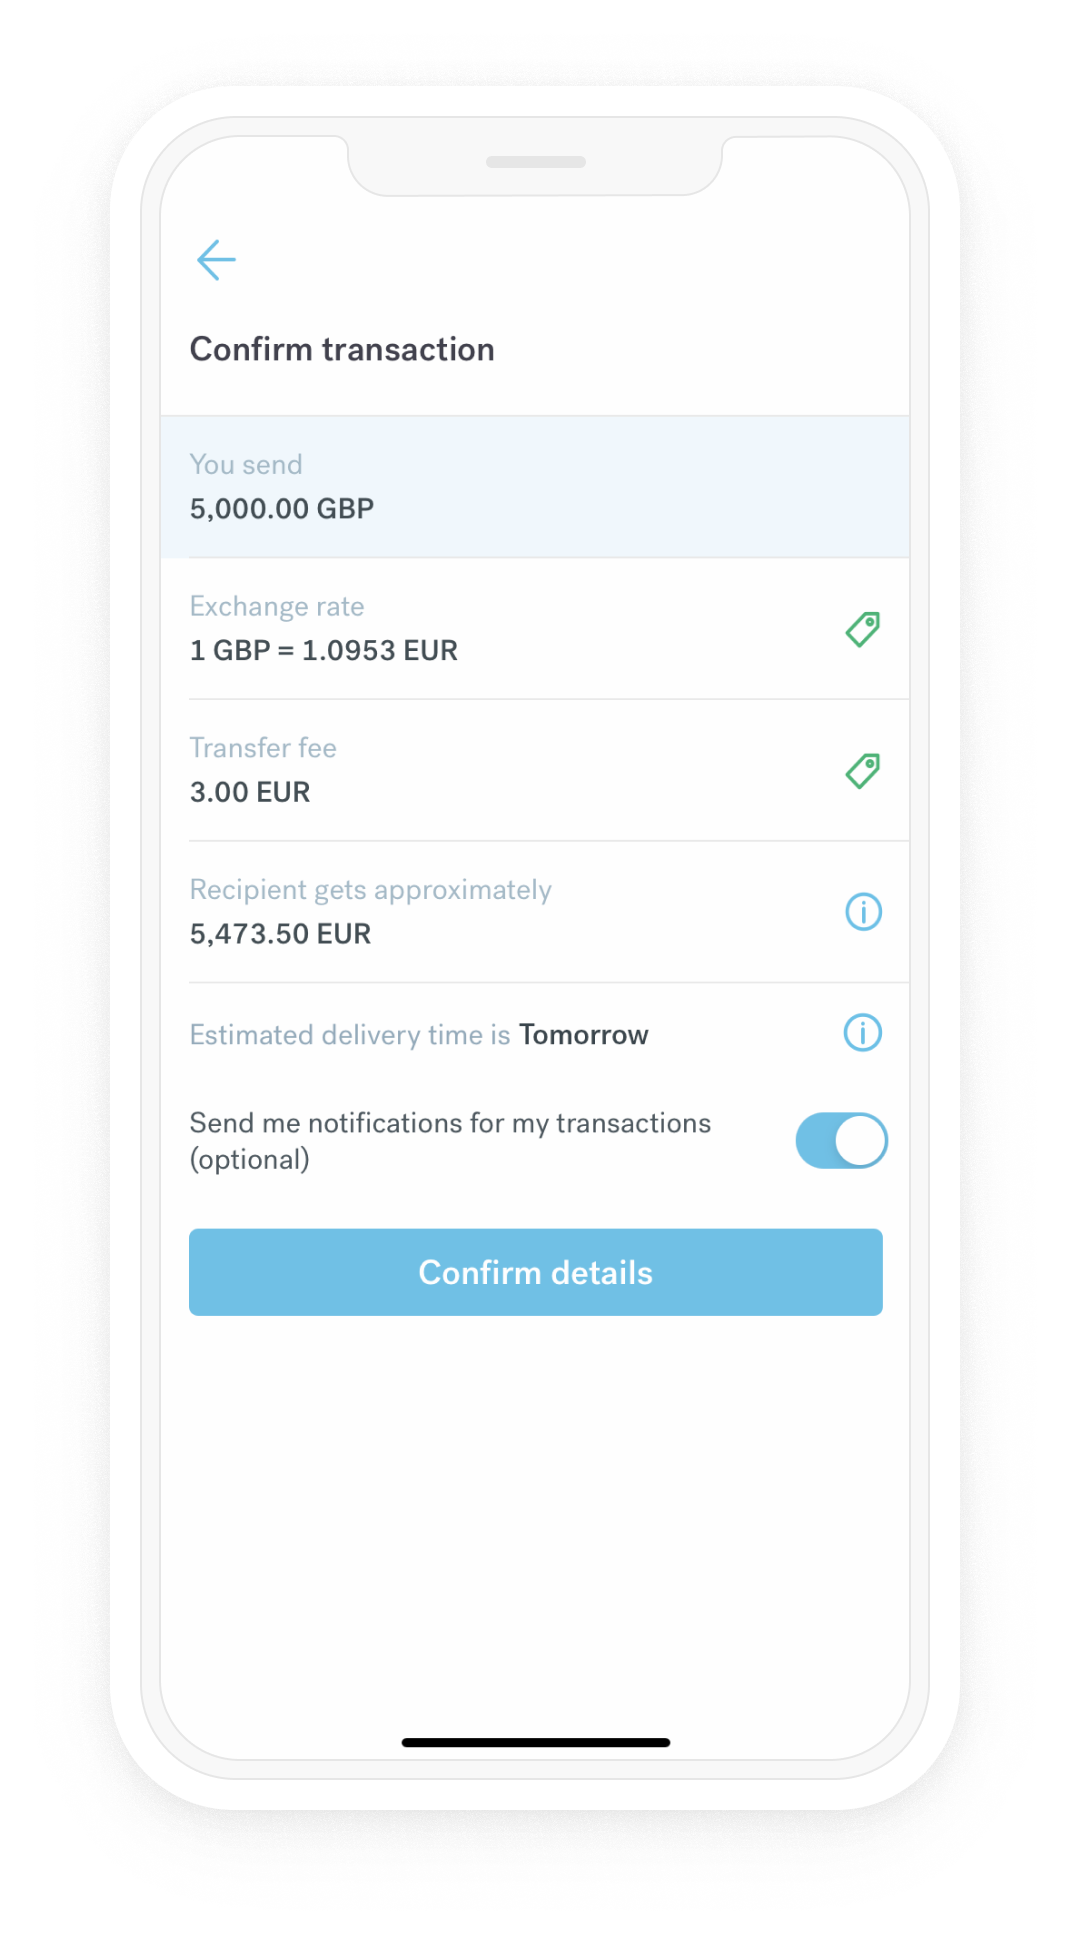 Image of CurrencyFair's app showing transaction details